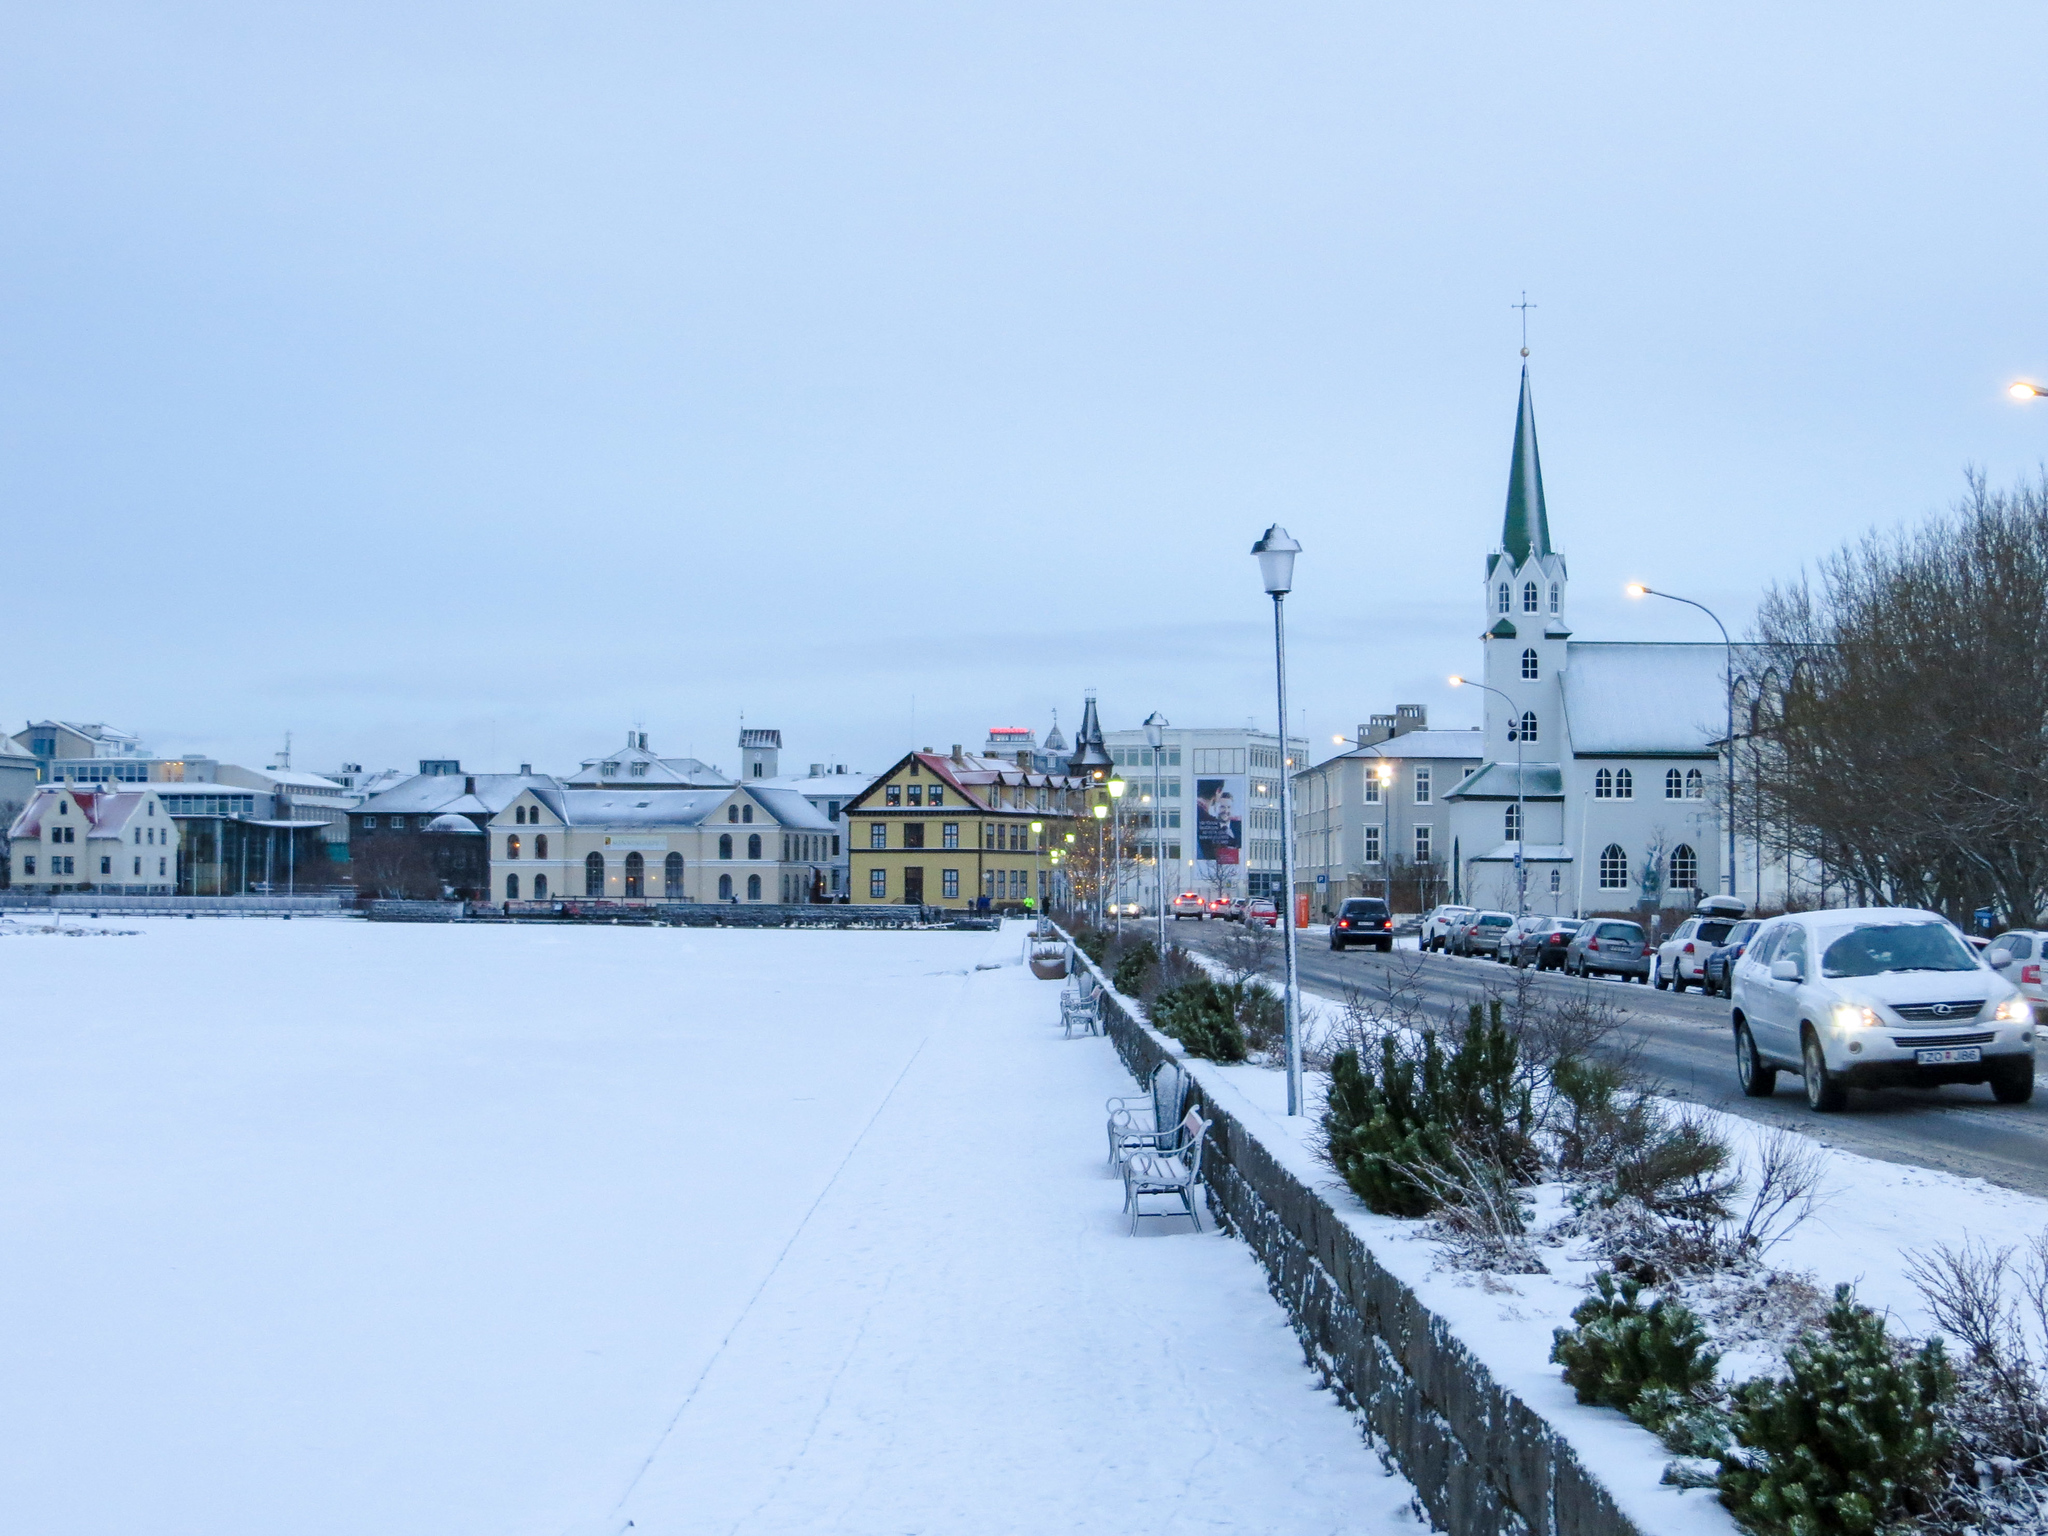 travel iceland alone and explore the snowy streets